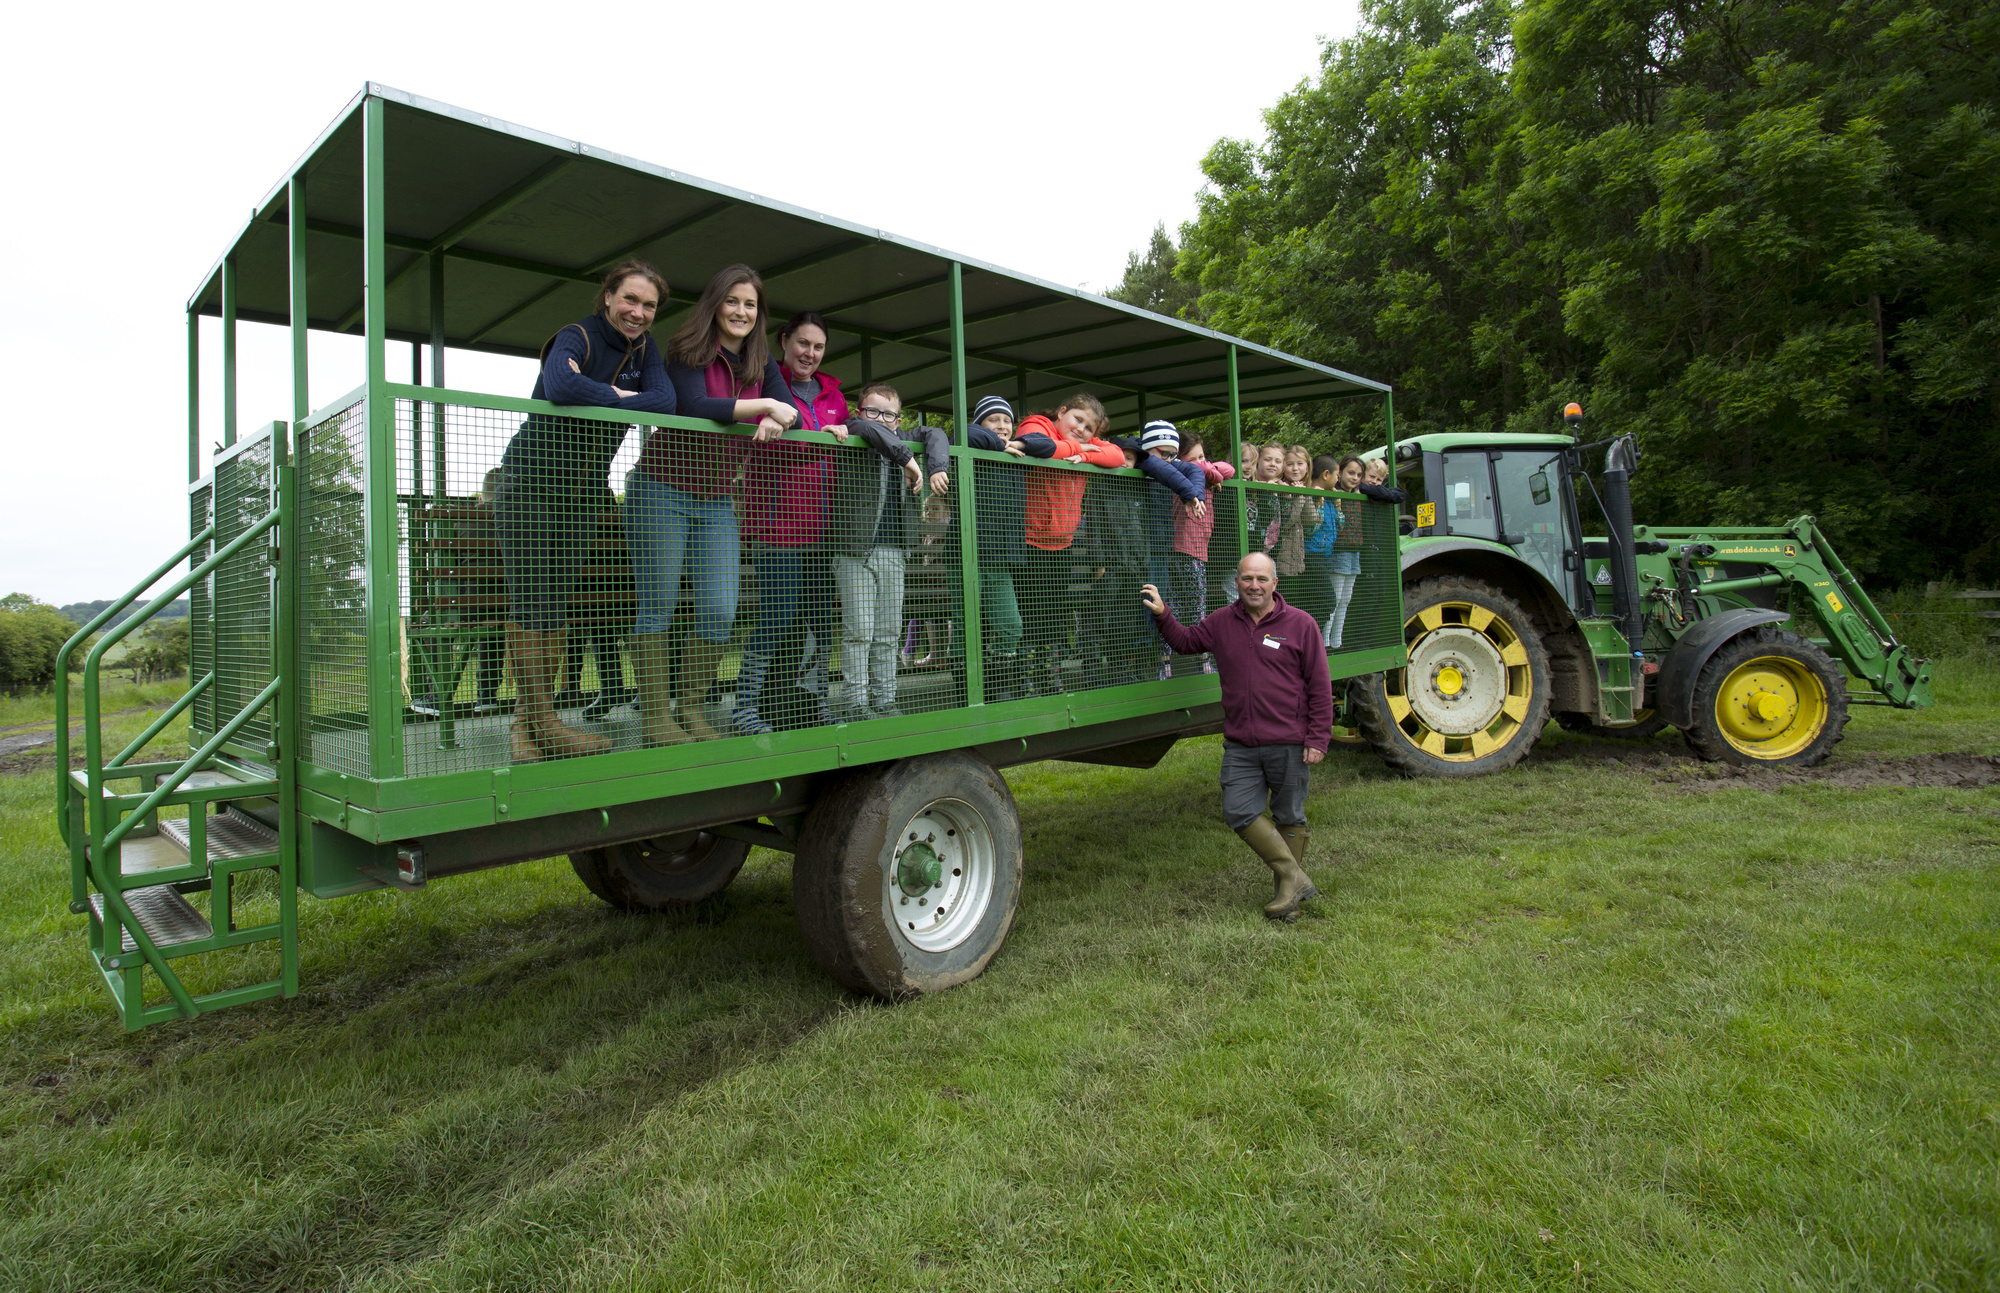 Farmyard fun: Teachers and students from St Lawrence RC Primary School, Byker, with David Thompson (The Country Trust) and Beth Thompson and Elizabeth Earle (Muckle LLP) at Broxfield Farm.